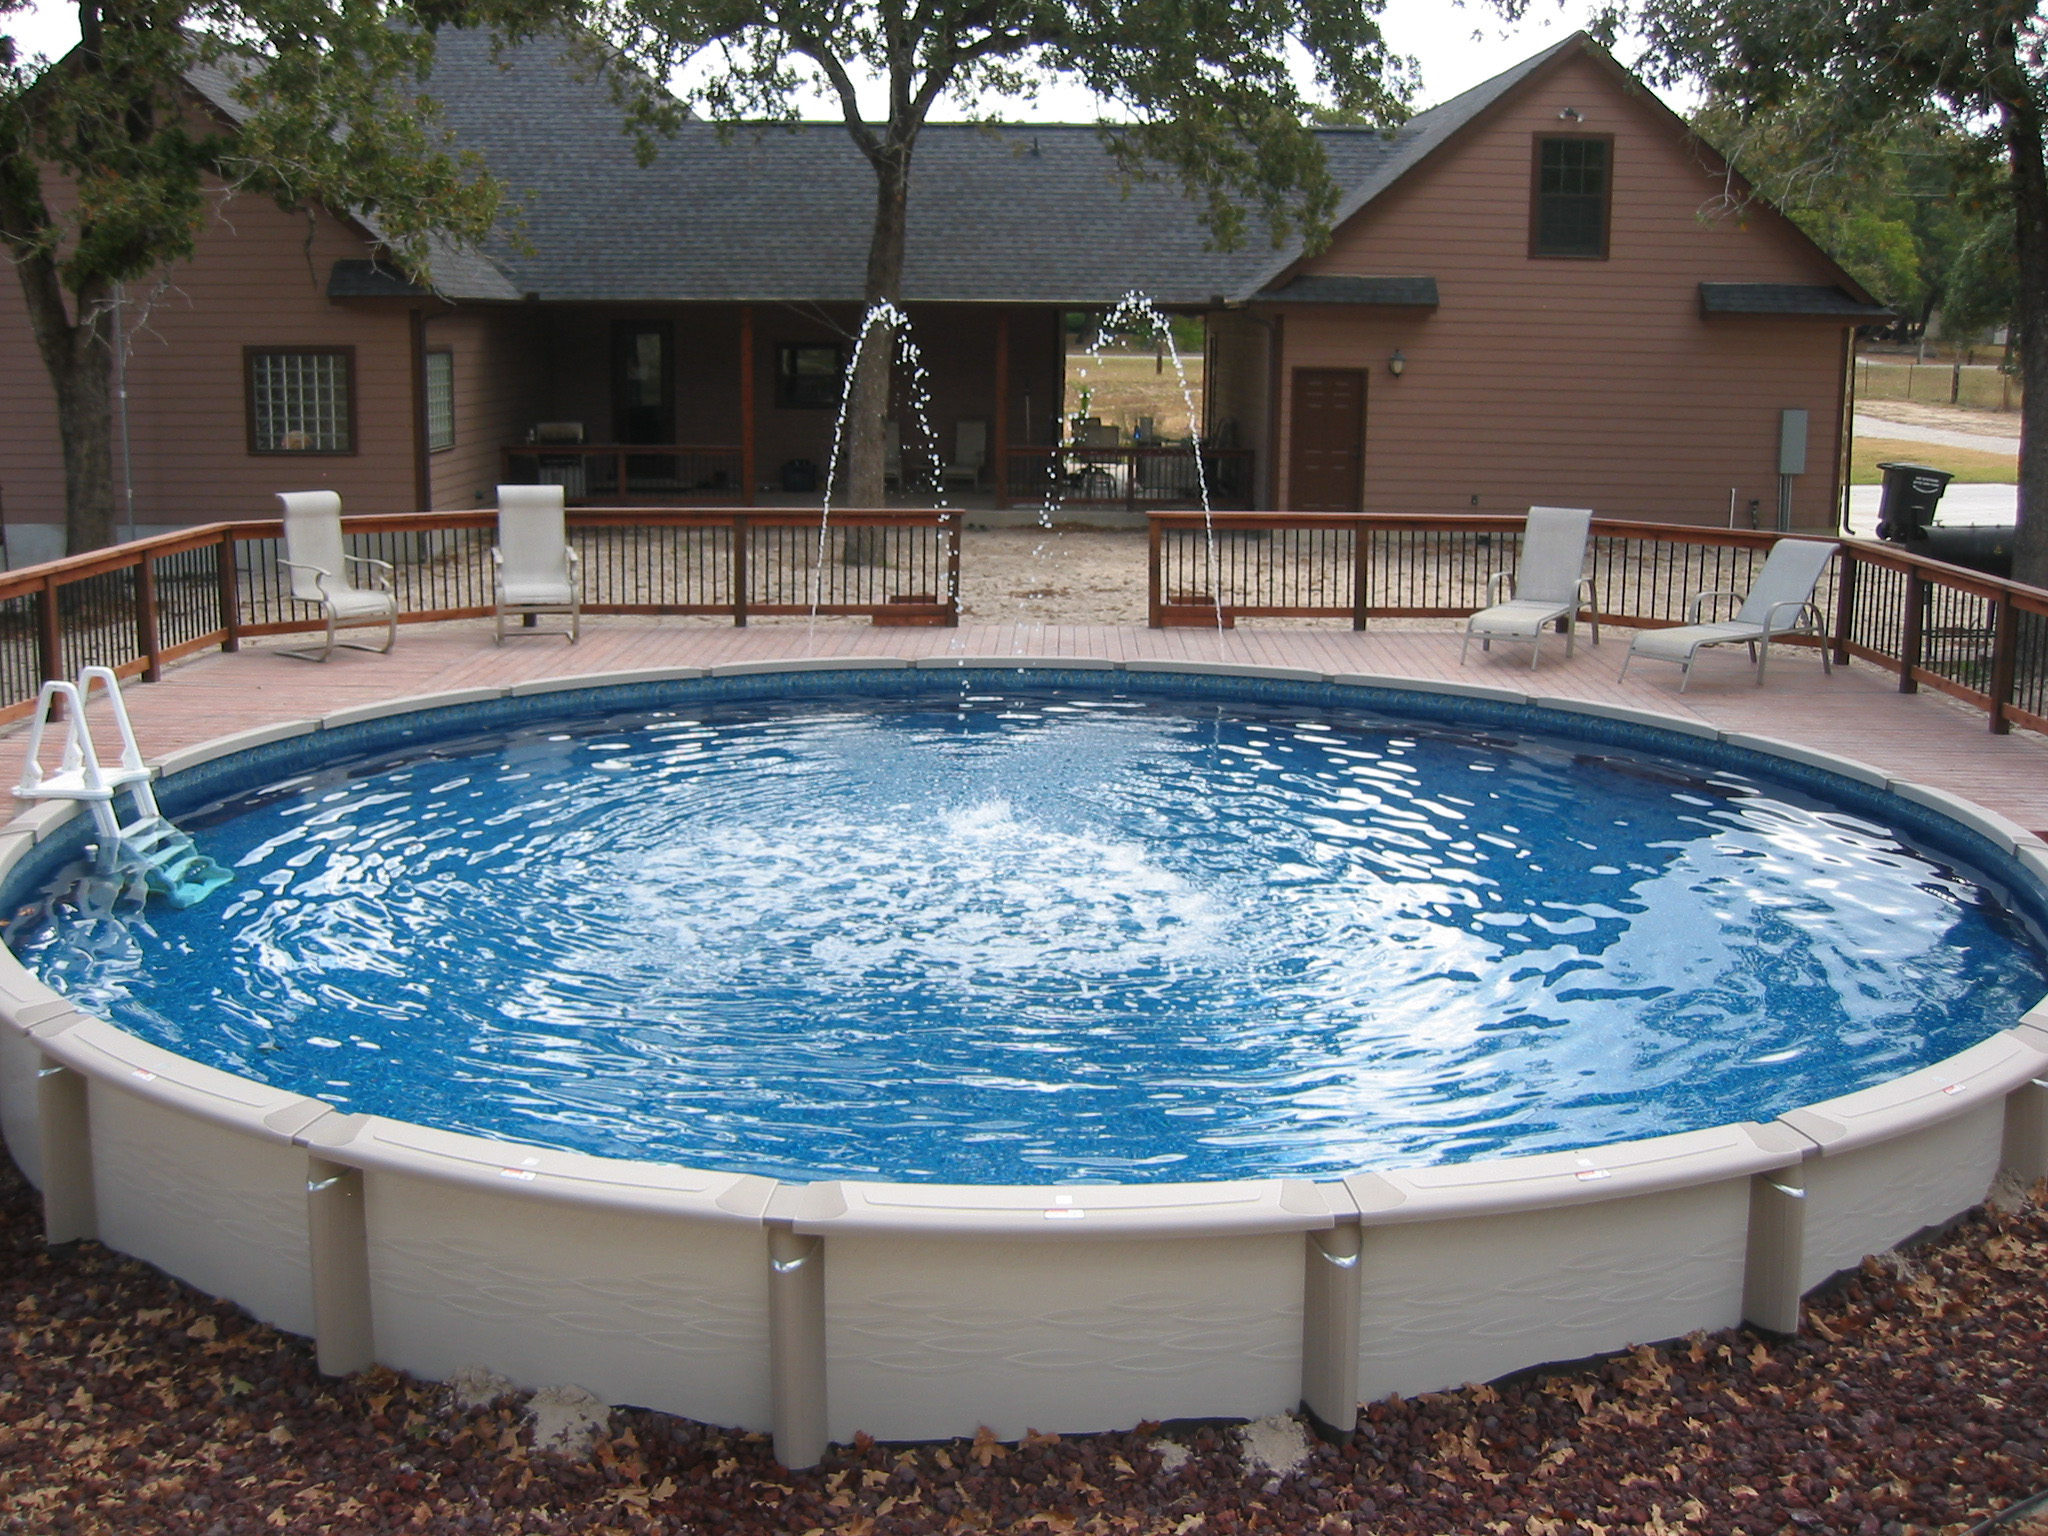 Best above ground swimming pools design on vine for Best swimming pool designs